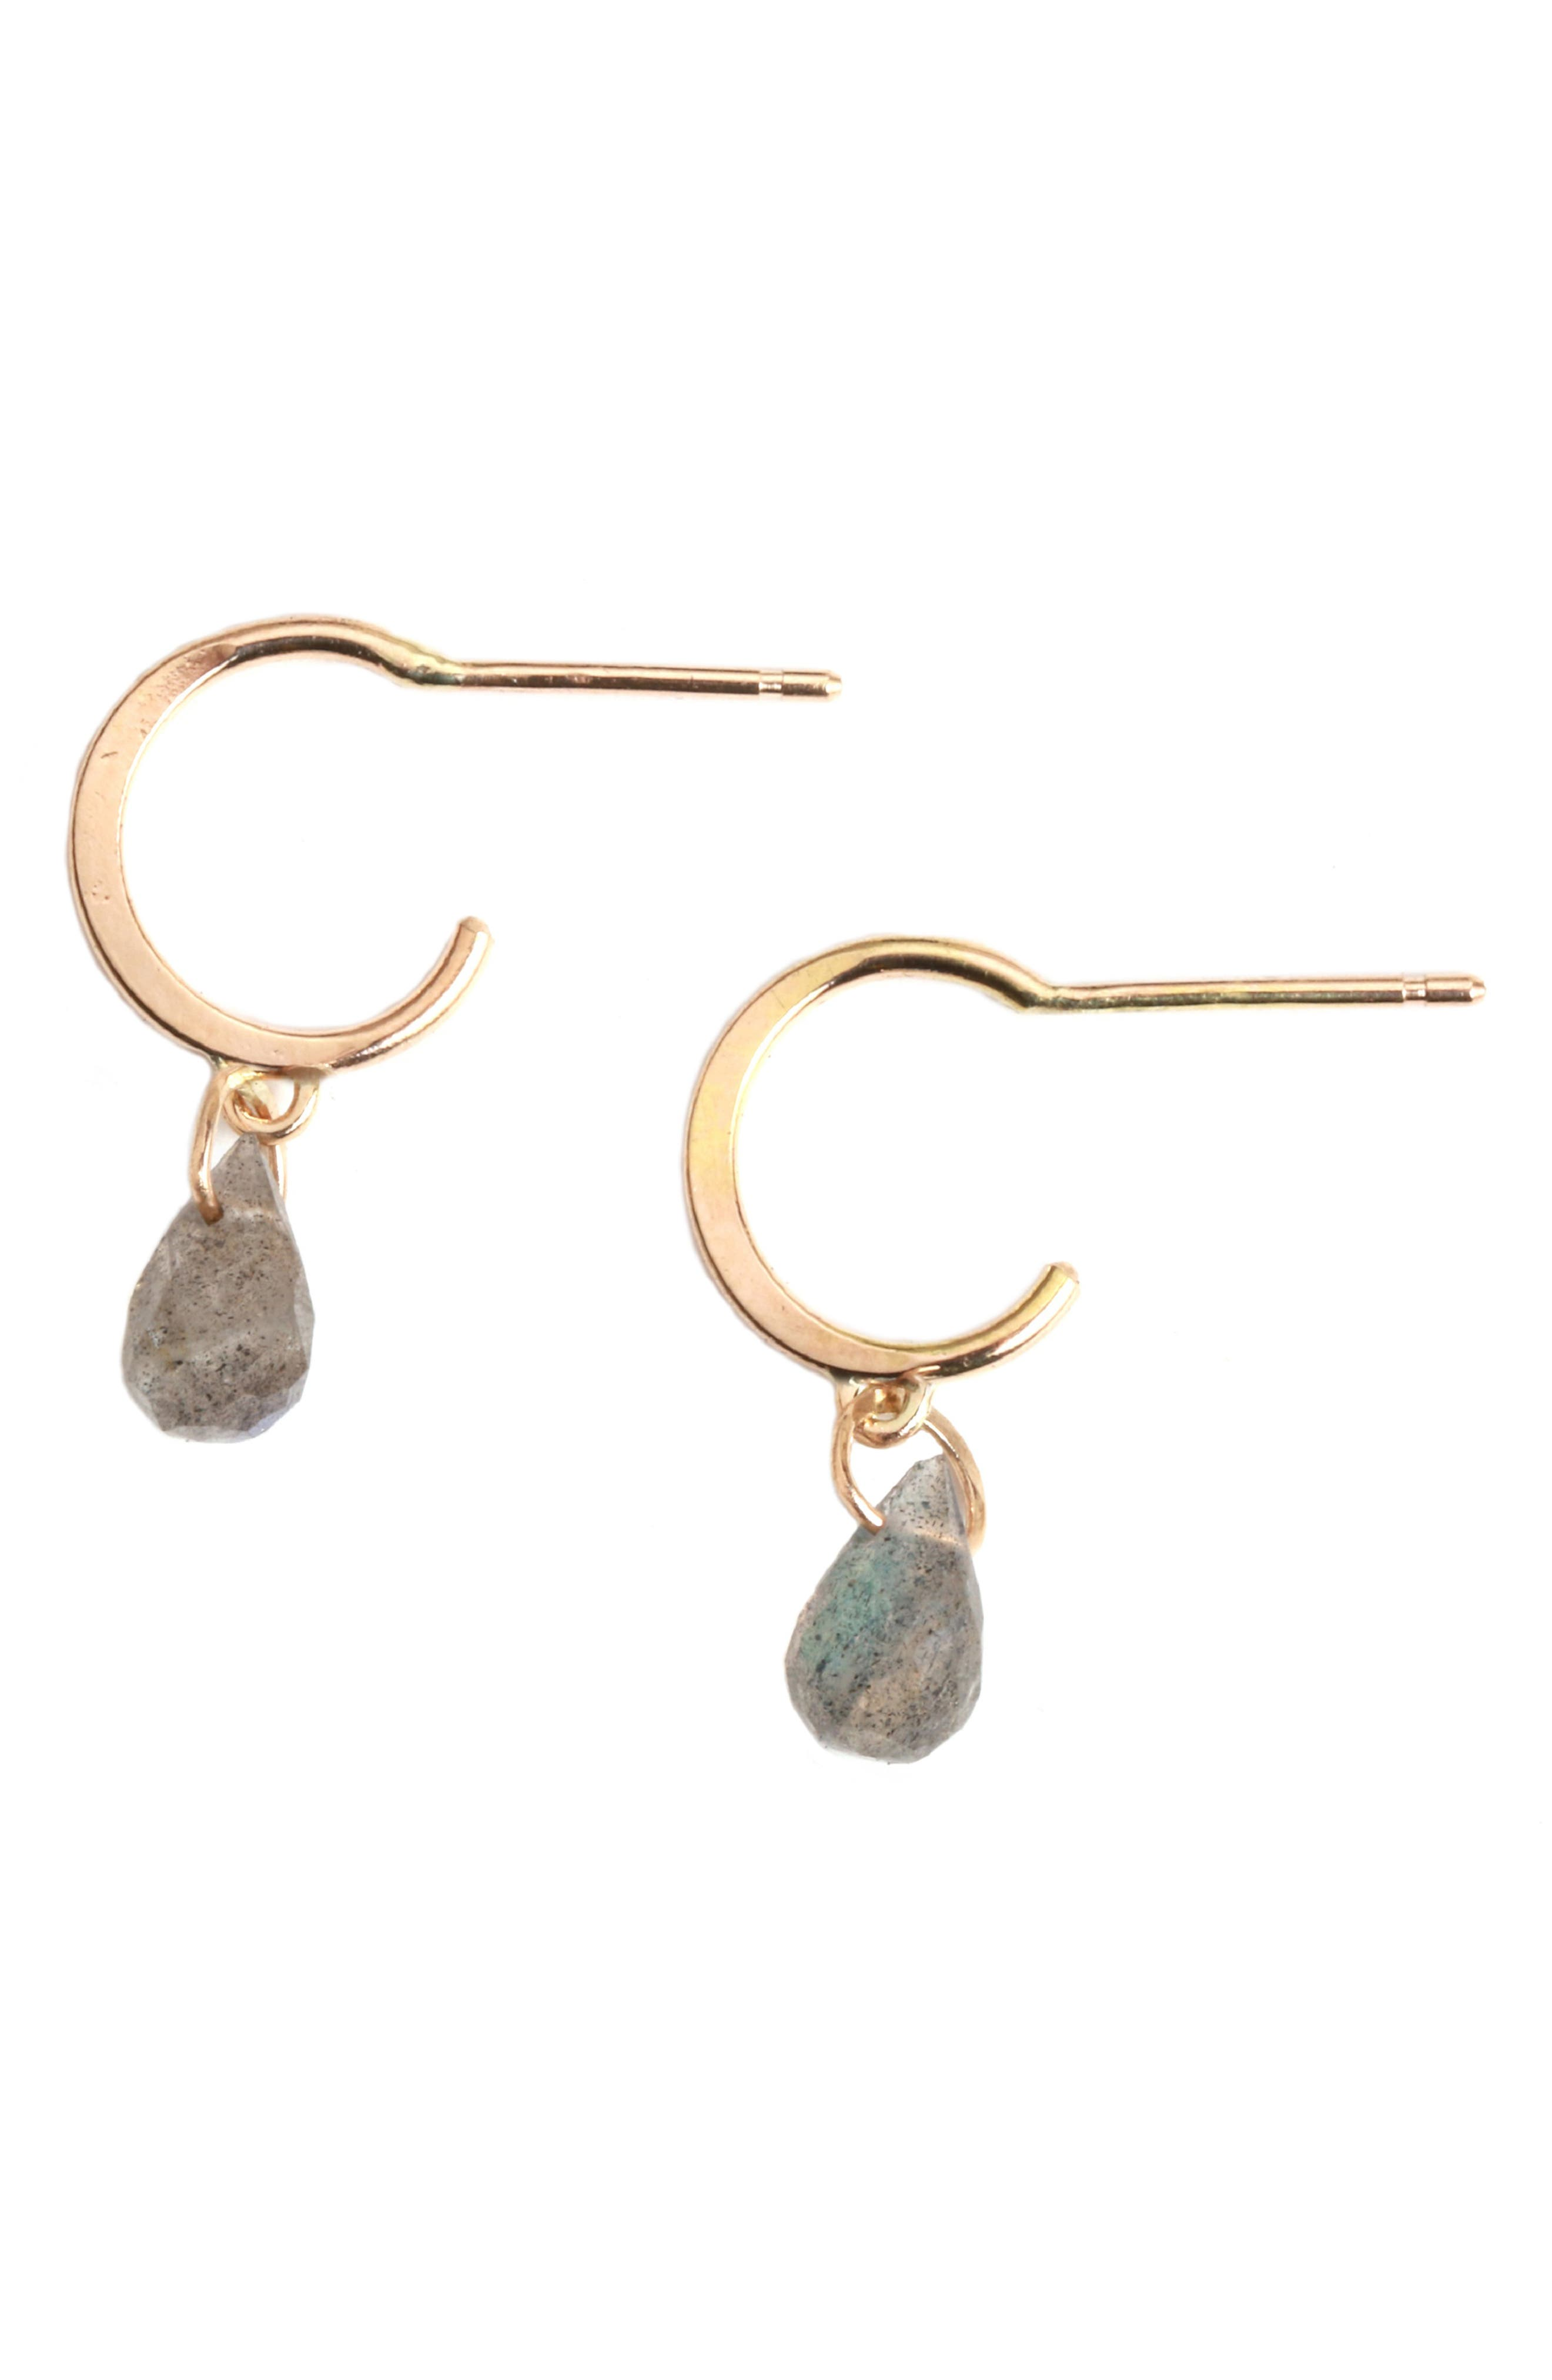 MELISSA JOY MANNING Mini Hoop Stone Drop Earrings in Labradorite/ Yellow Gold